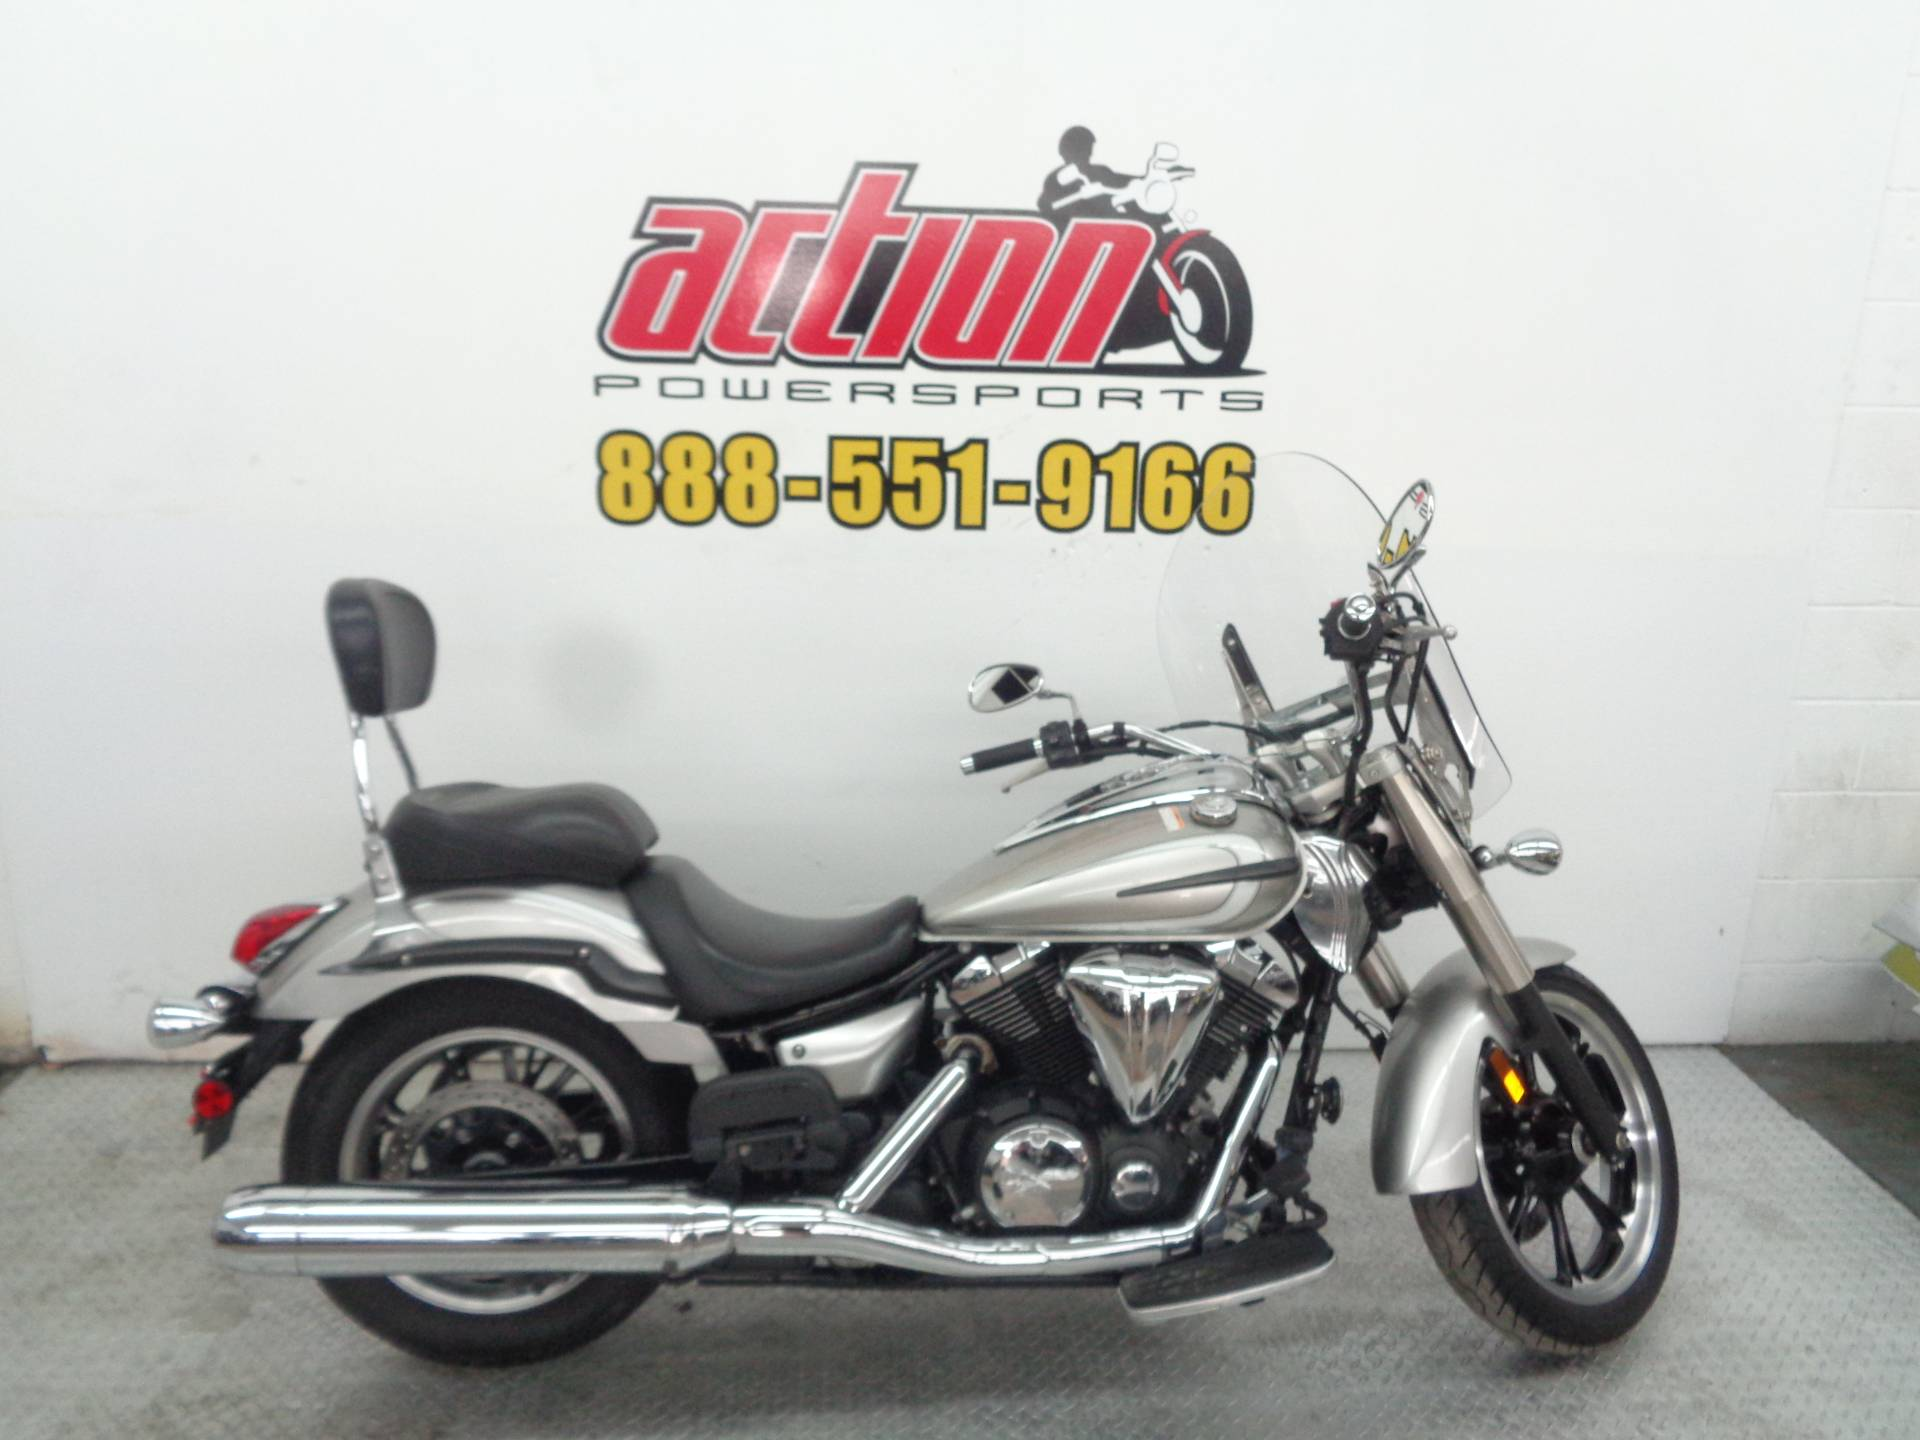 2012 Yamaha V Star 950 in Tulsa, Oklahoma - Photo 1